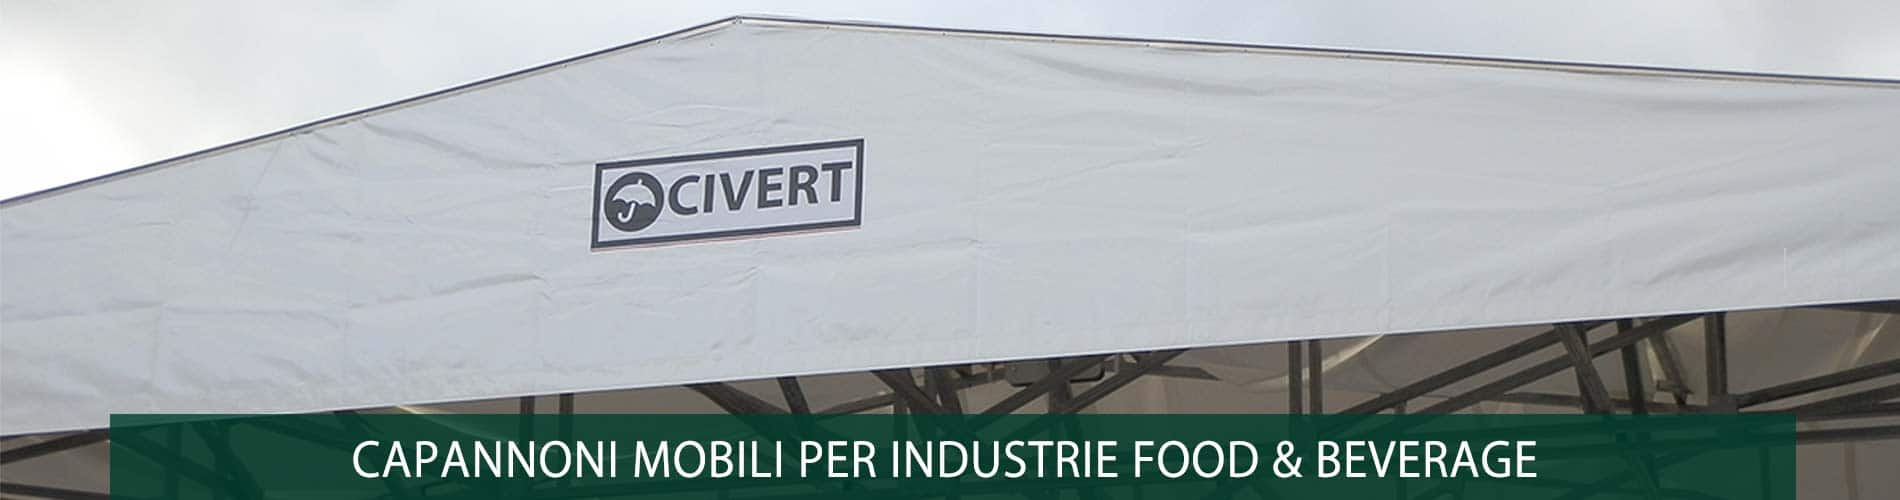 capannoni industrie food beverage